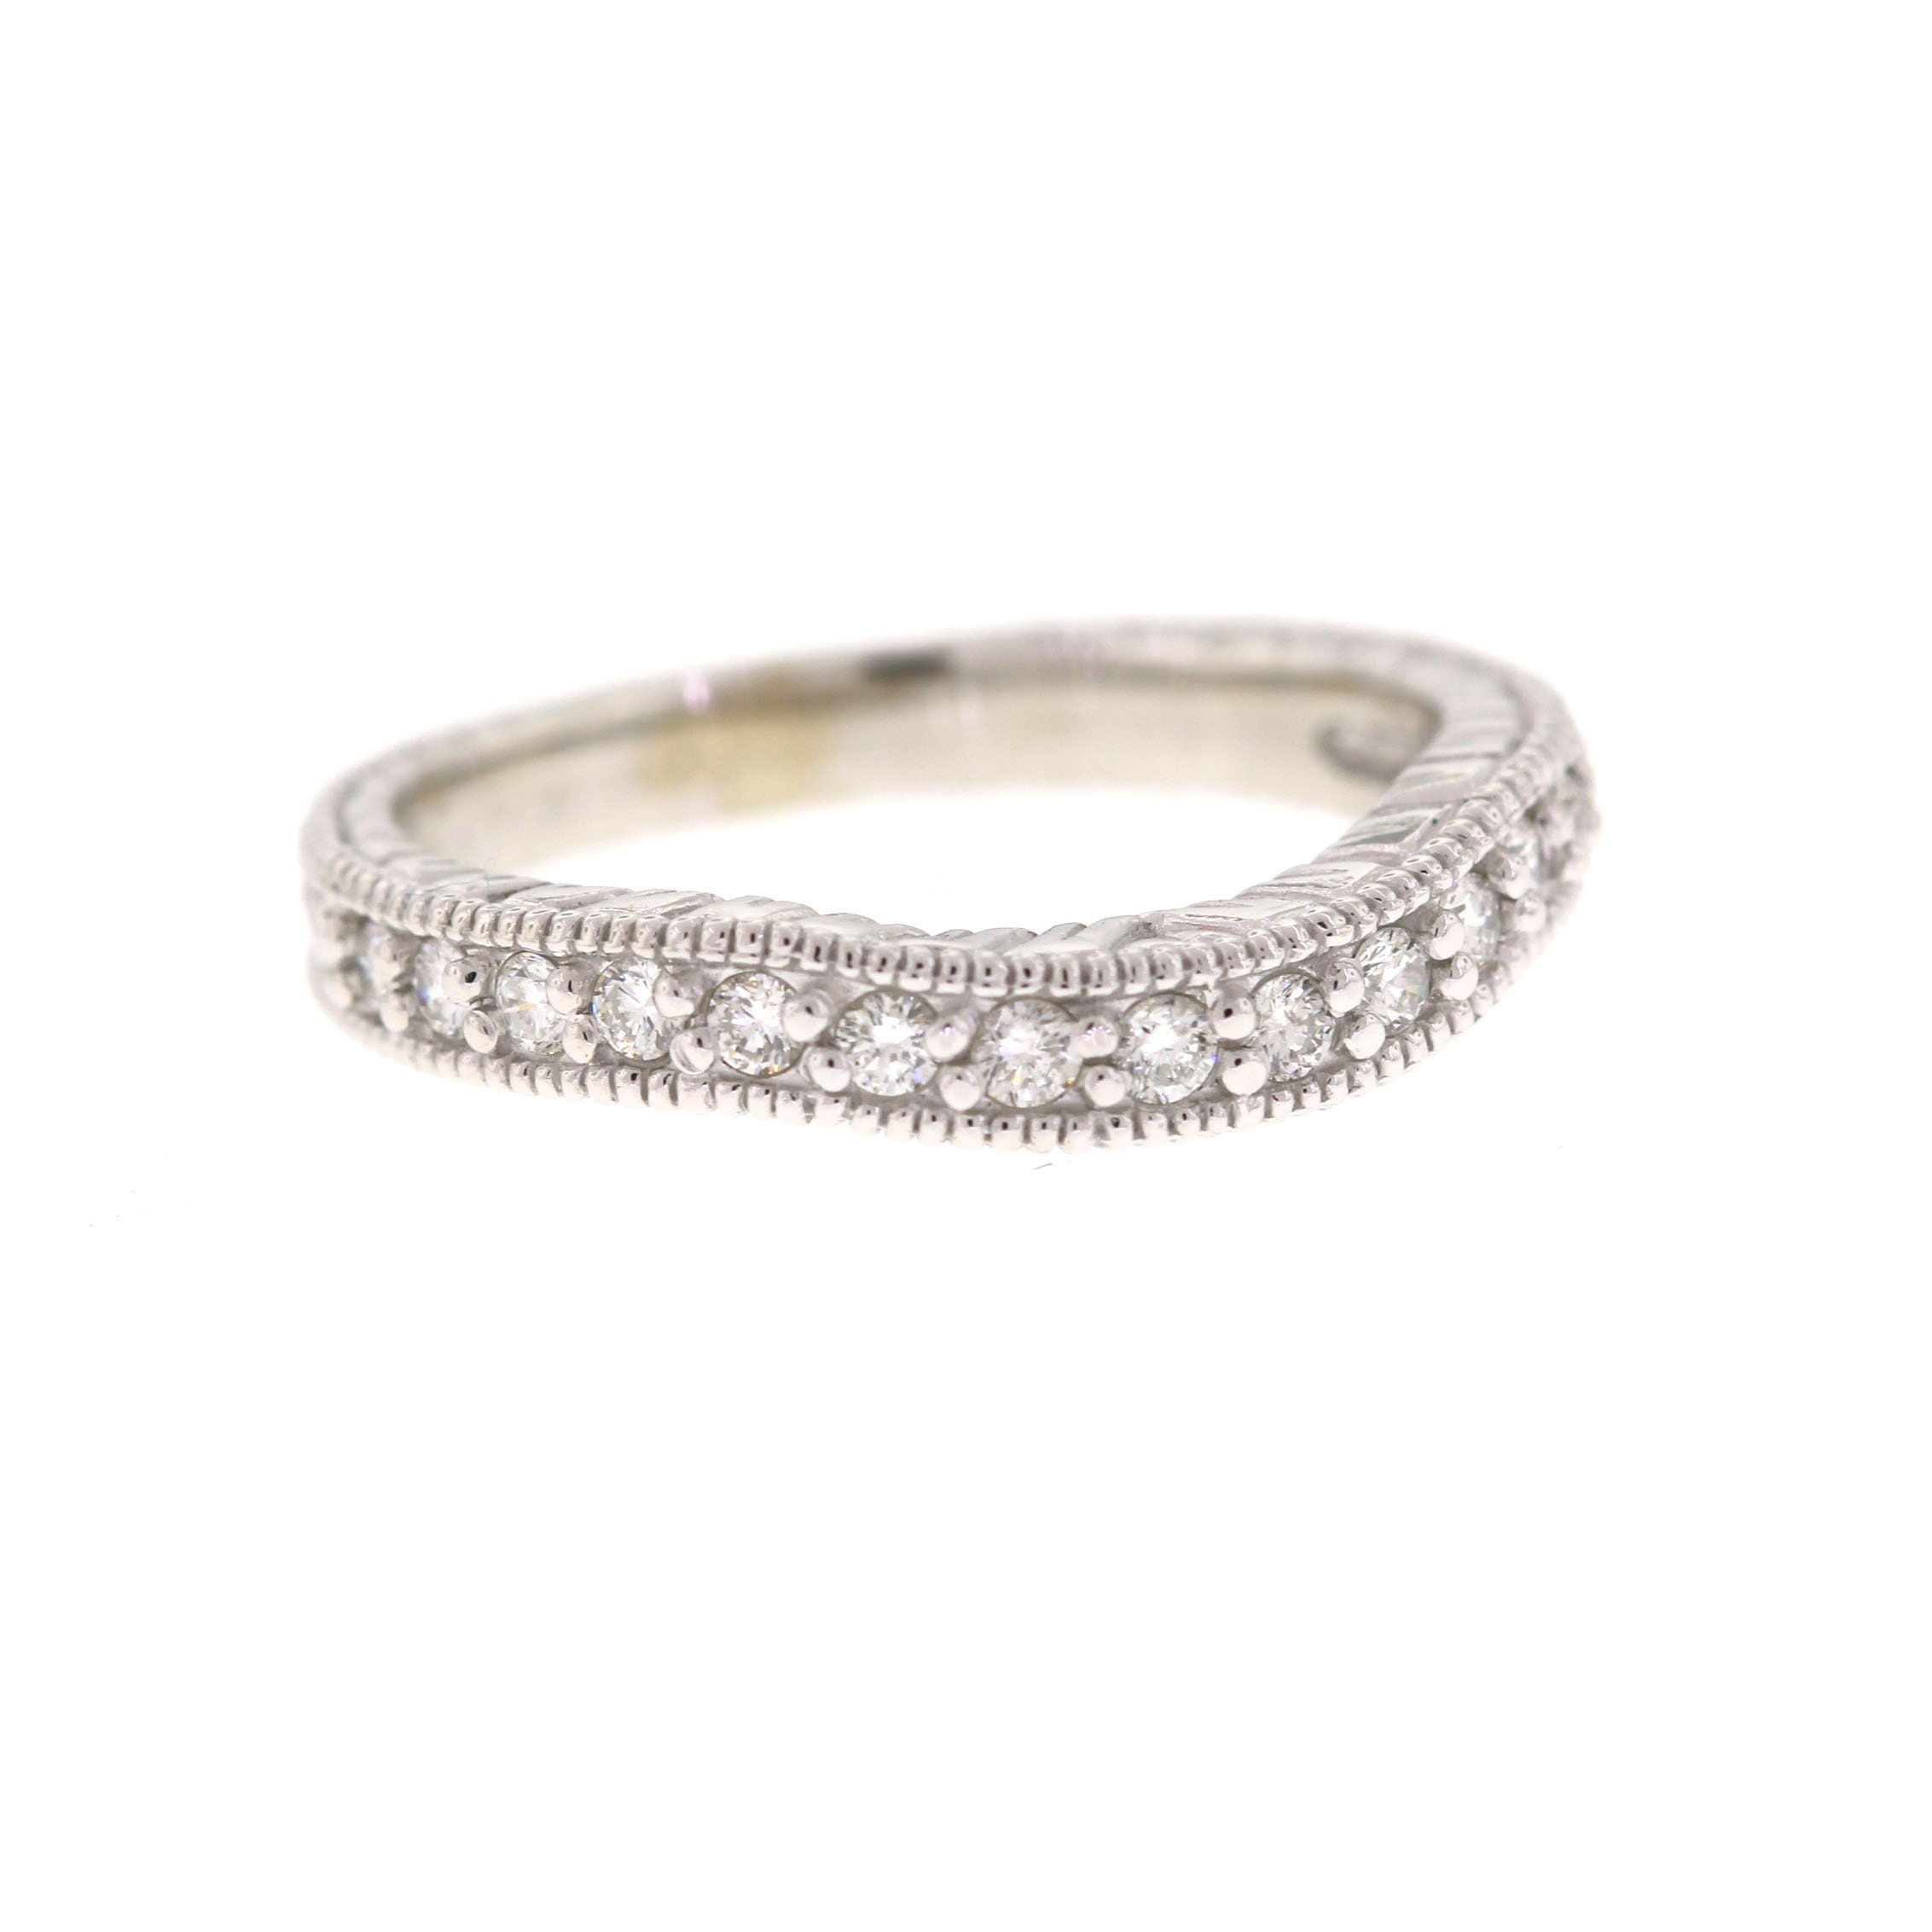 50: White Gold Diamond Curved Wedding Bands At Reisefeber.org